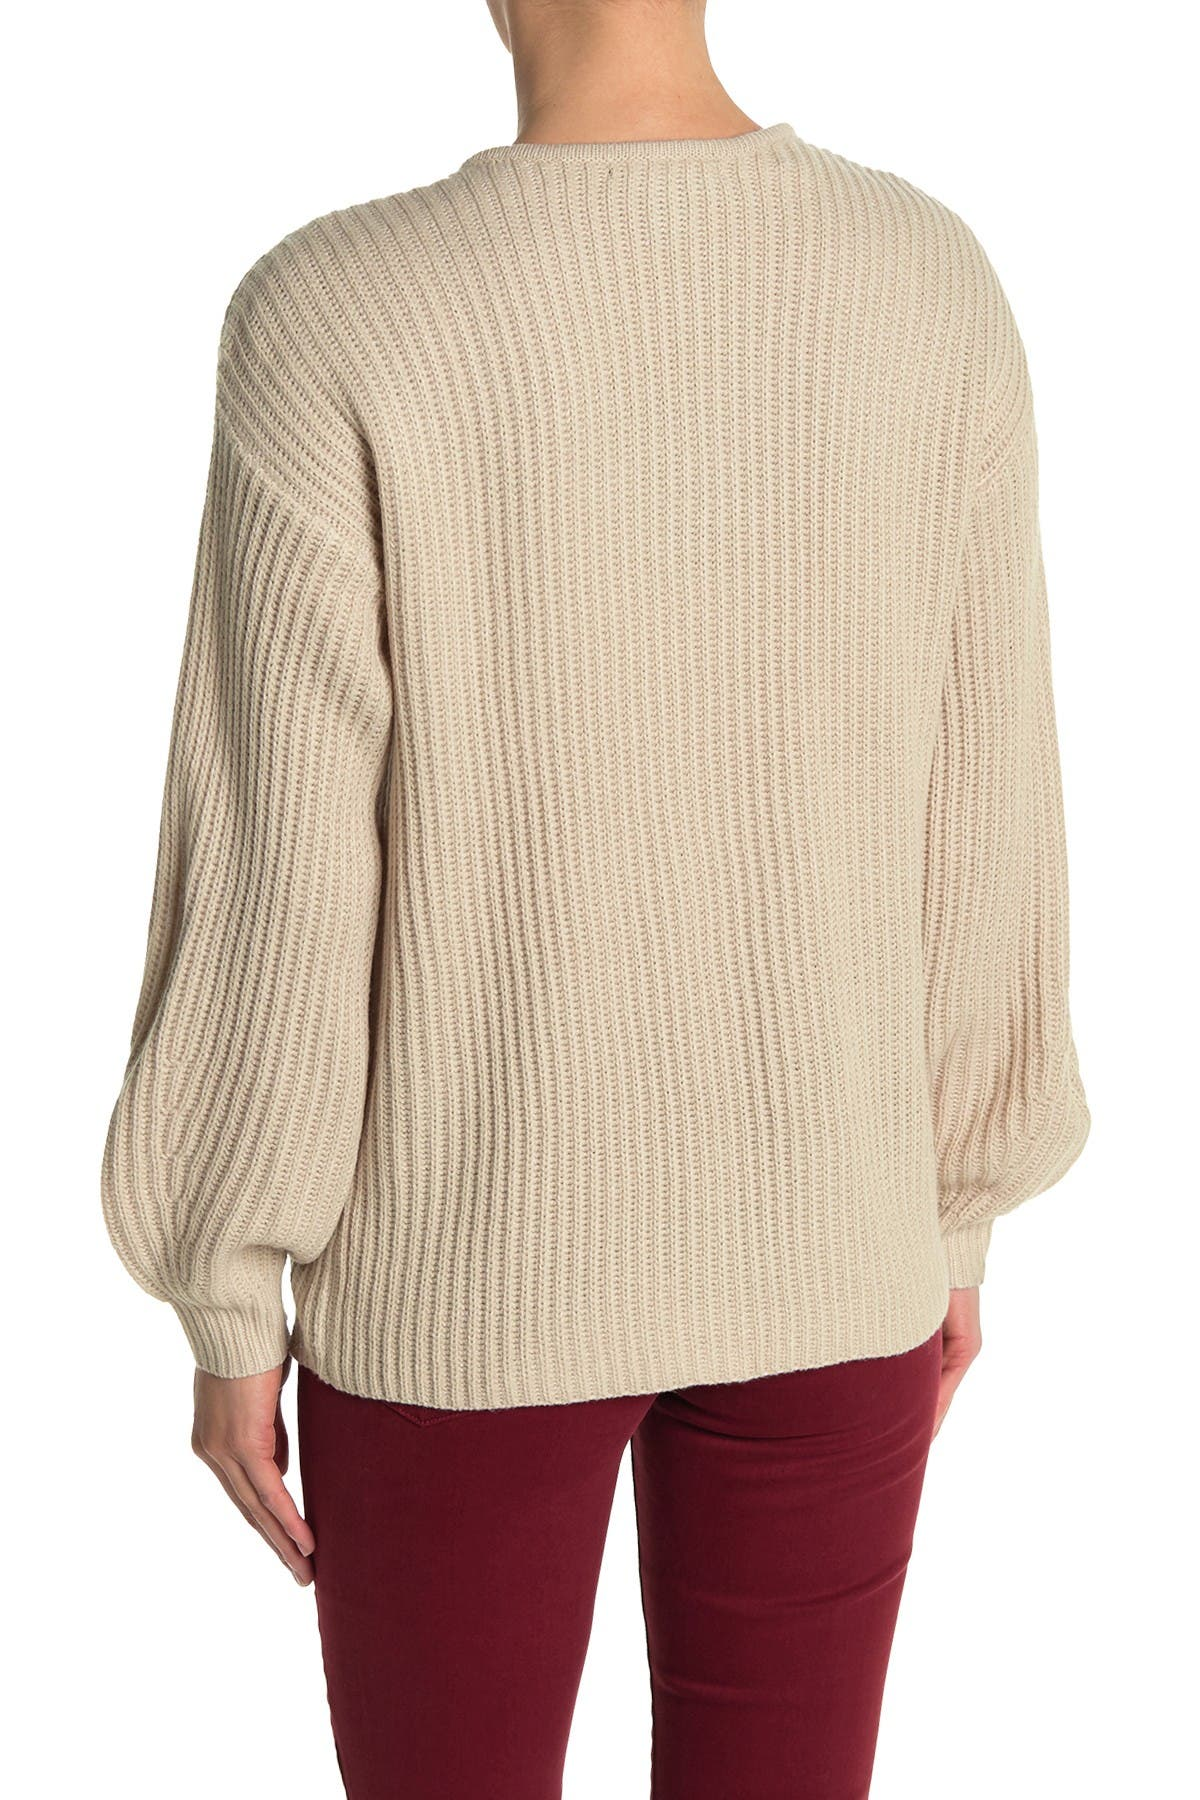 Image of Love by Design Luxe Knit Cardigan